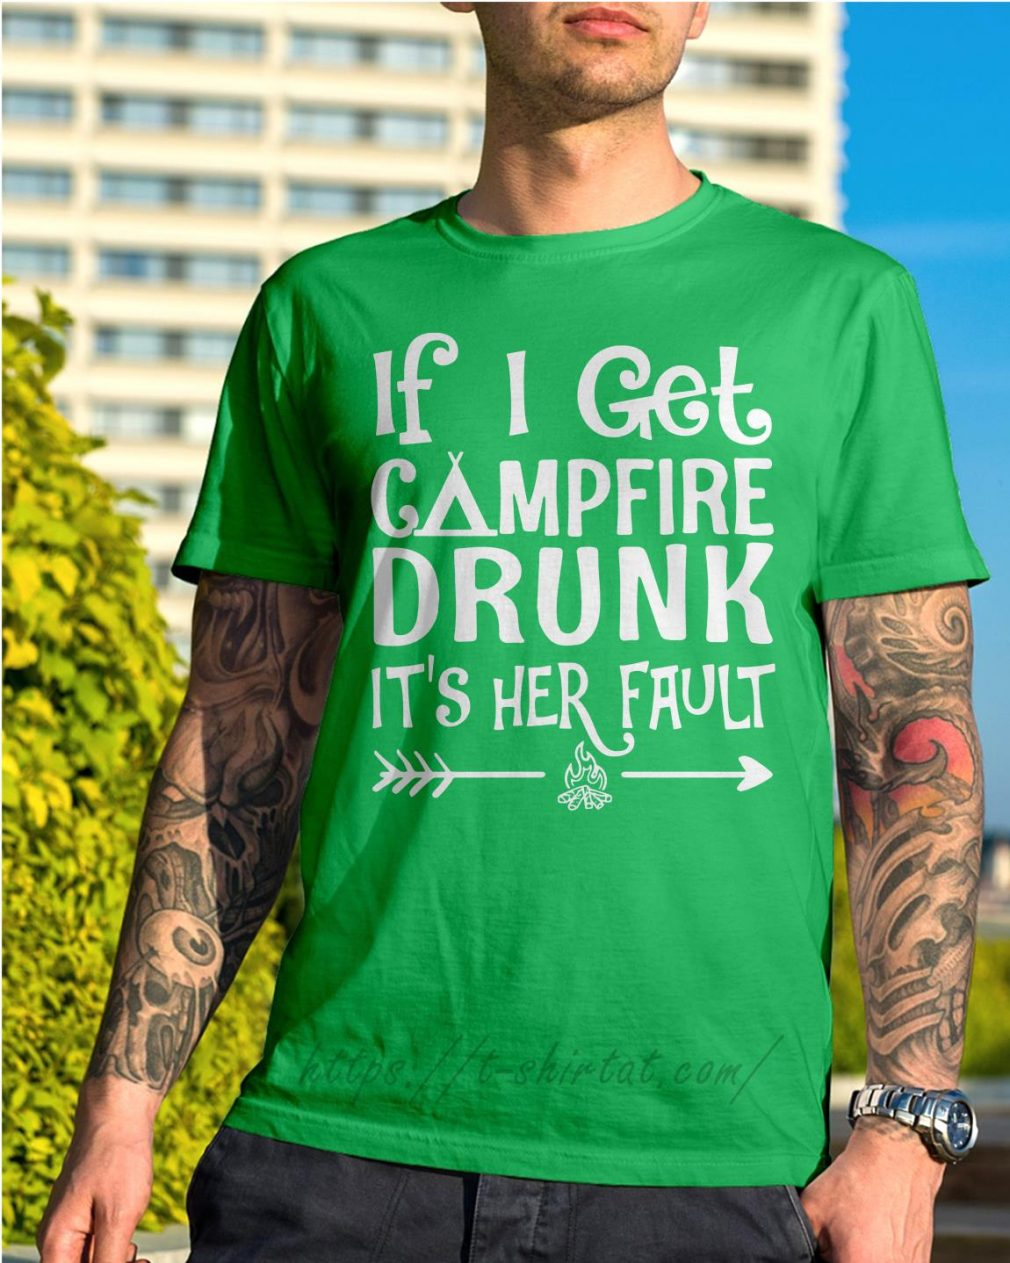 If I get campfire drunk it's her fault Shirt green